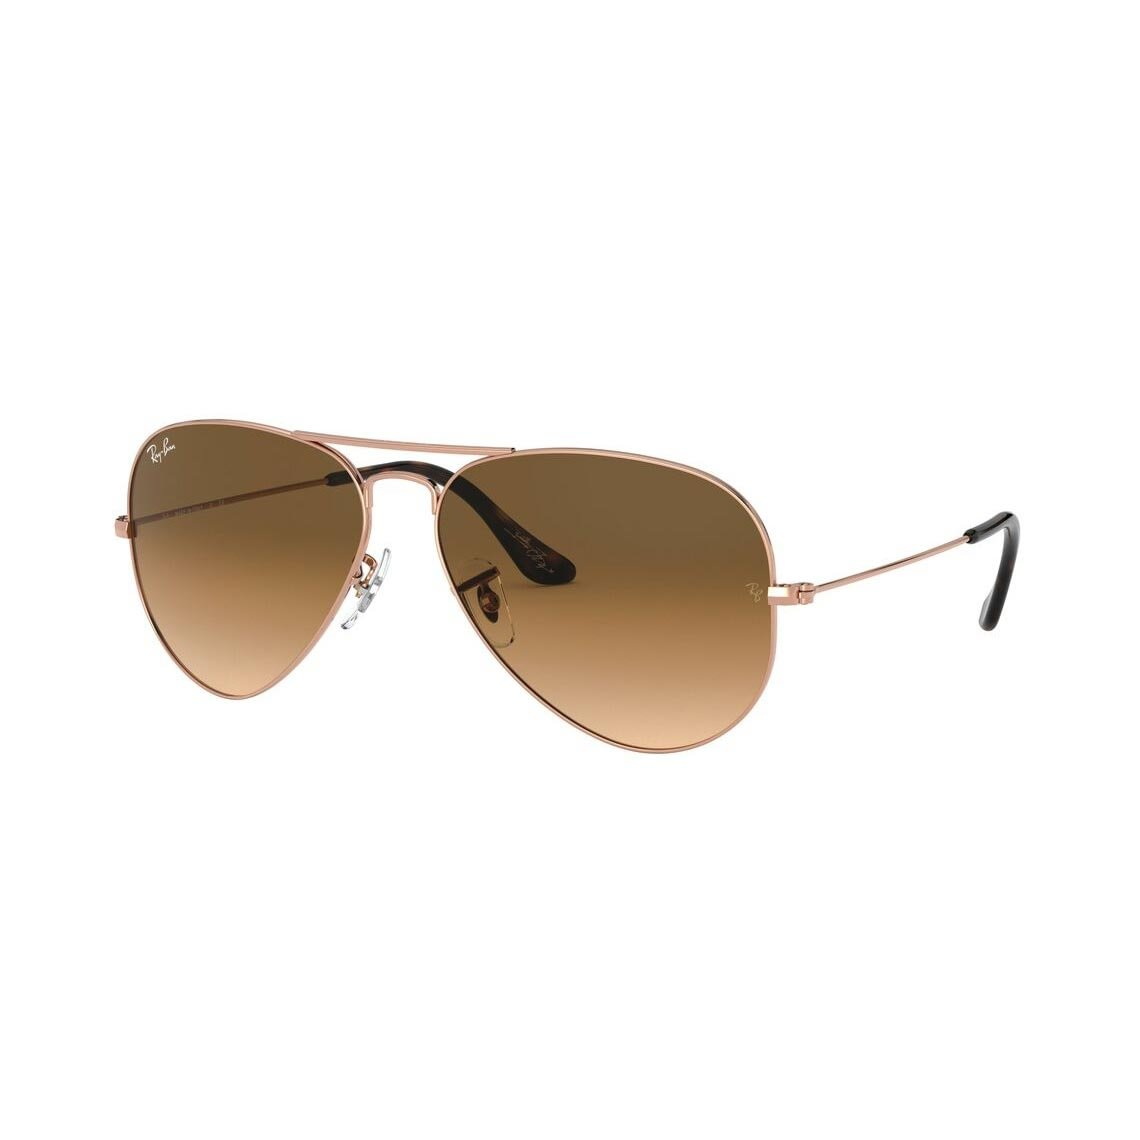 Ray-Ban Aviator Team Wang X Ray-Ban RB3025 903551 6214